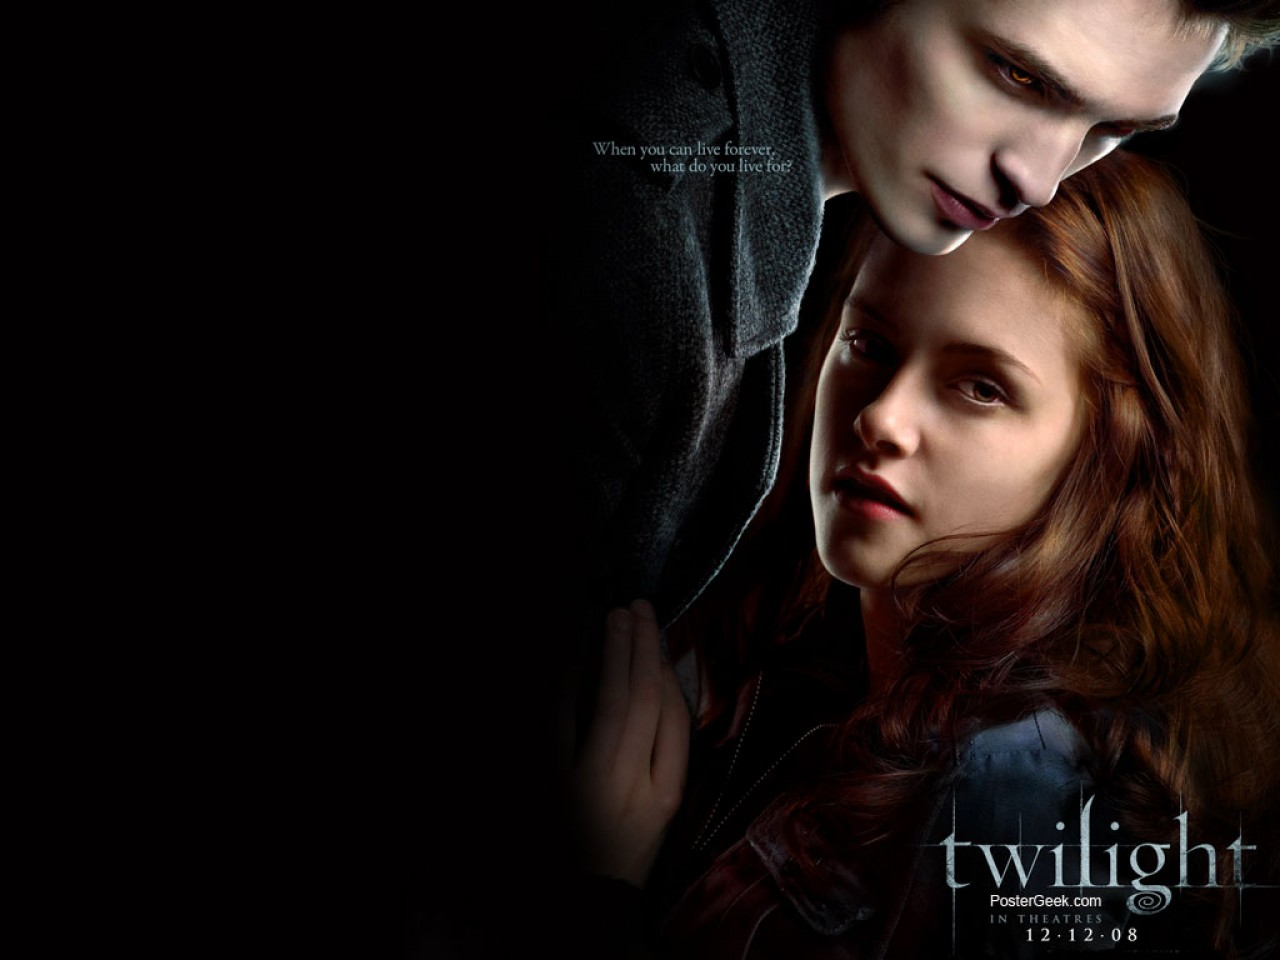 window 7 hd wallpaper: twilight hollywood movie hd wallpaper